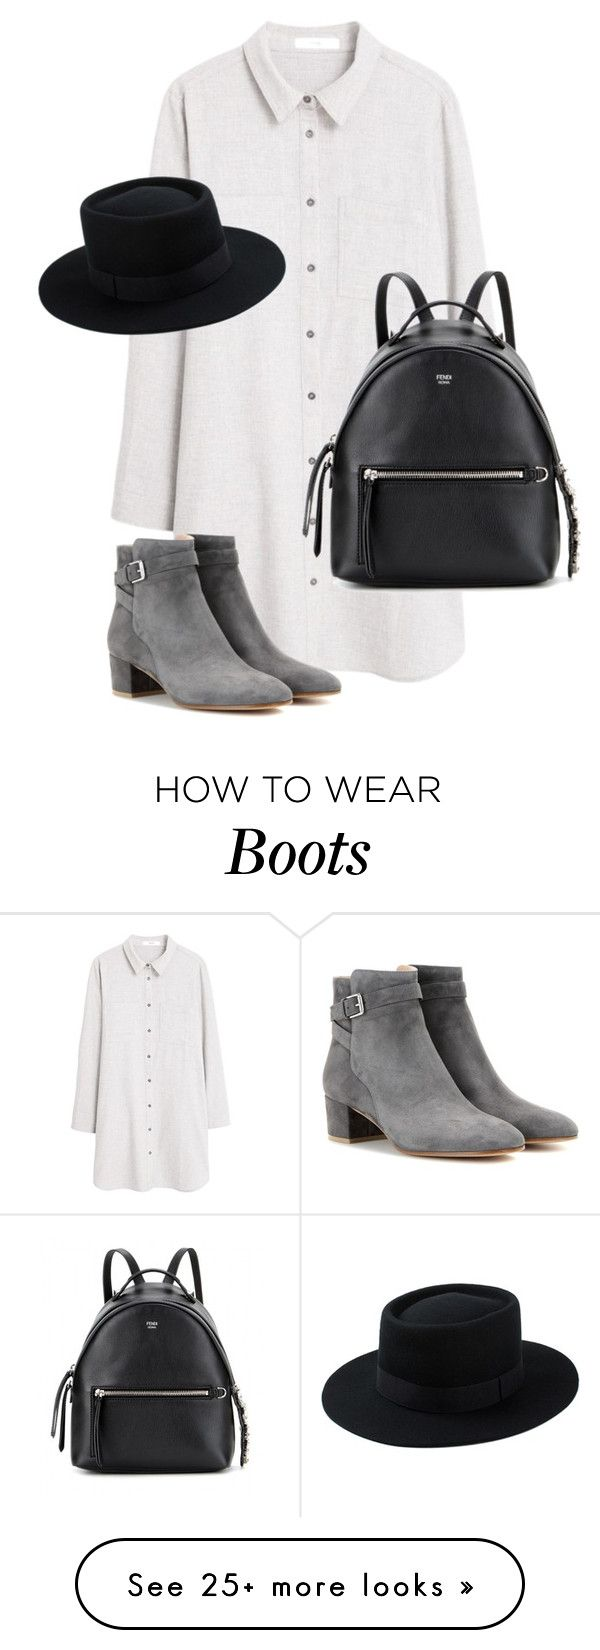 """Untitled #10445"" by alexsrogers on Polyvore featuring MANGO, Gianvito Rossi and Fendi"